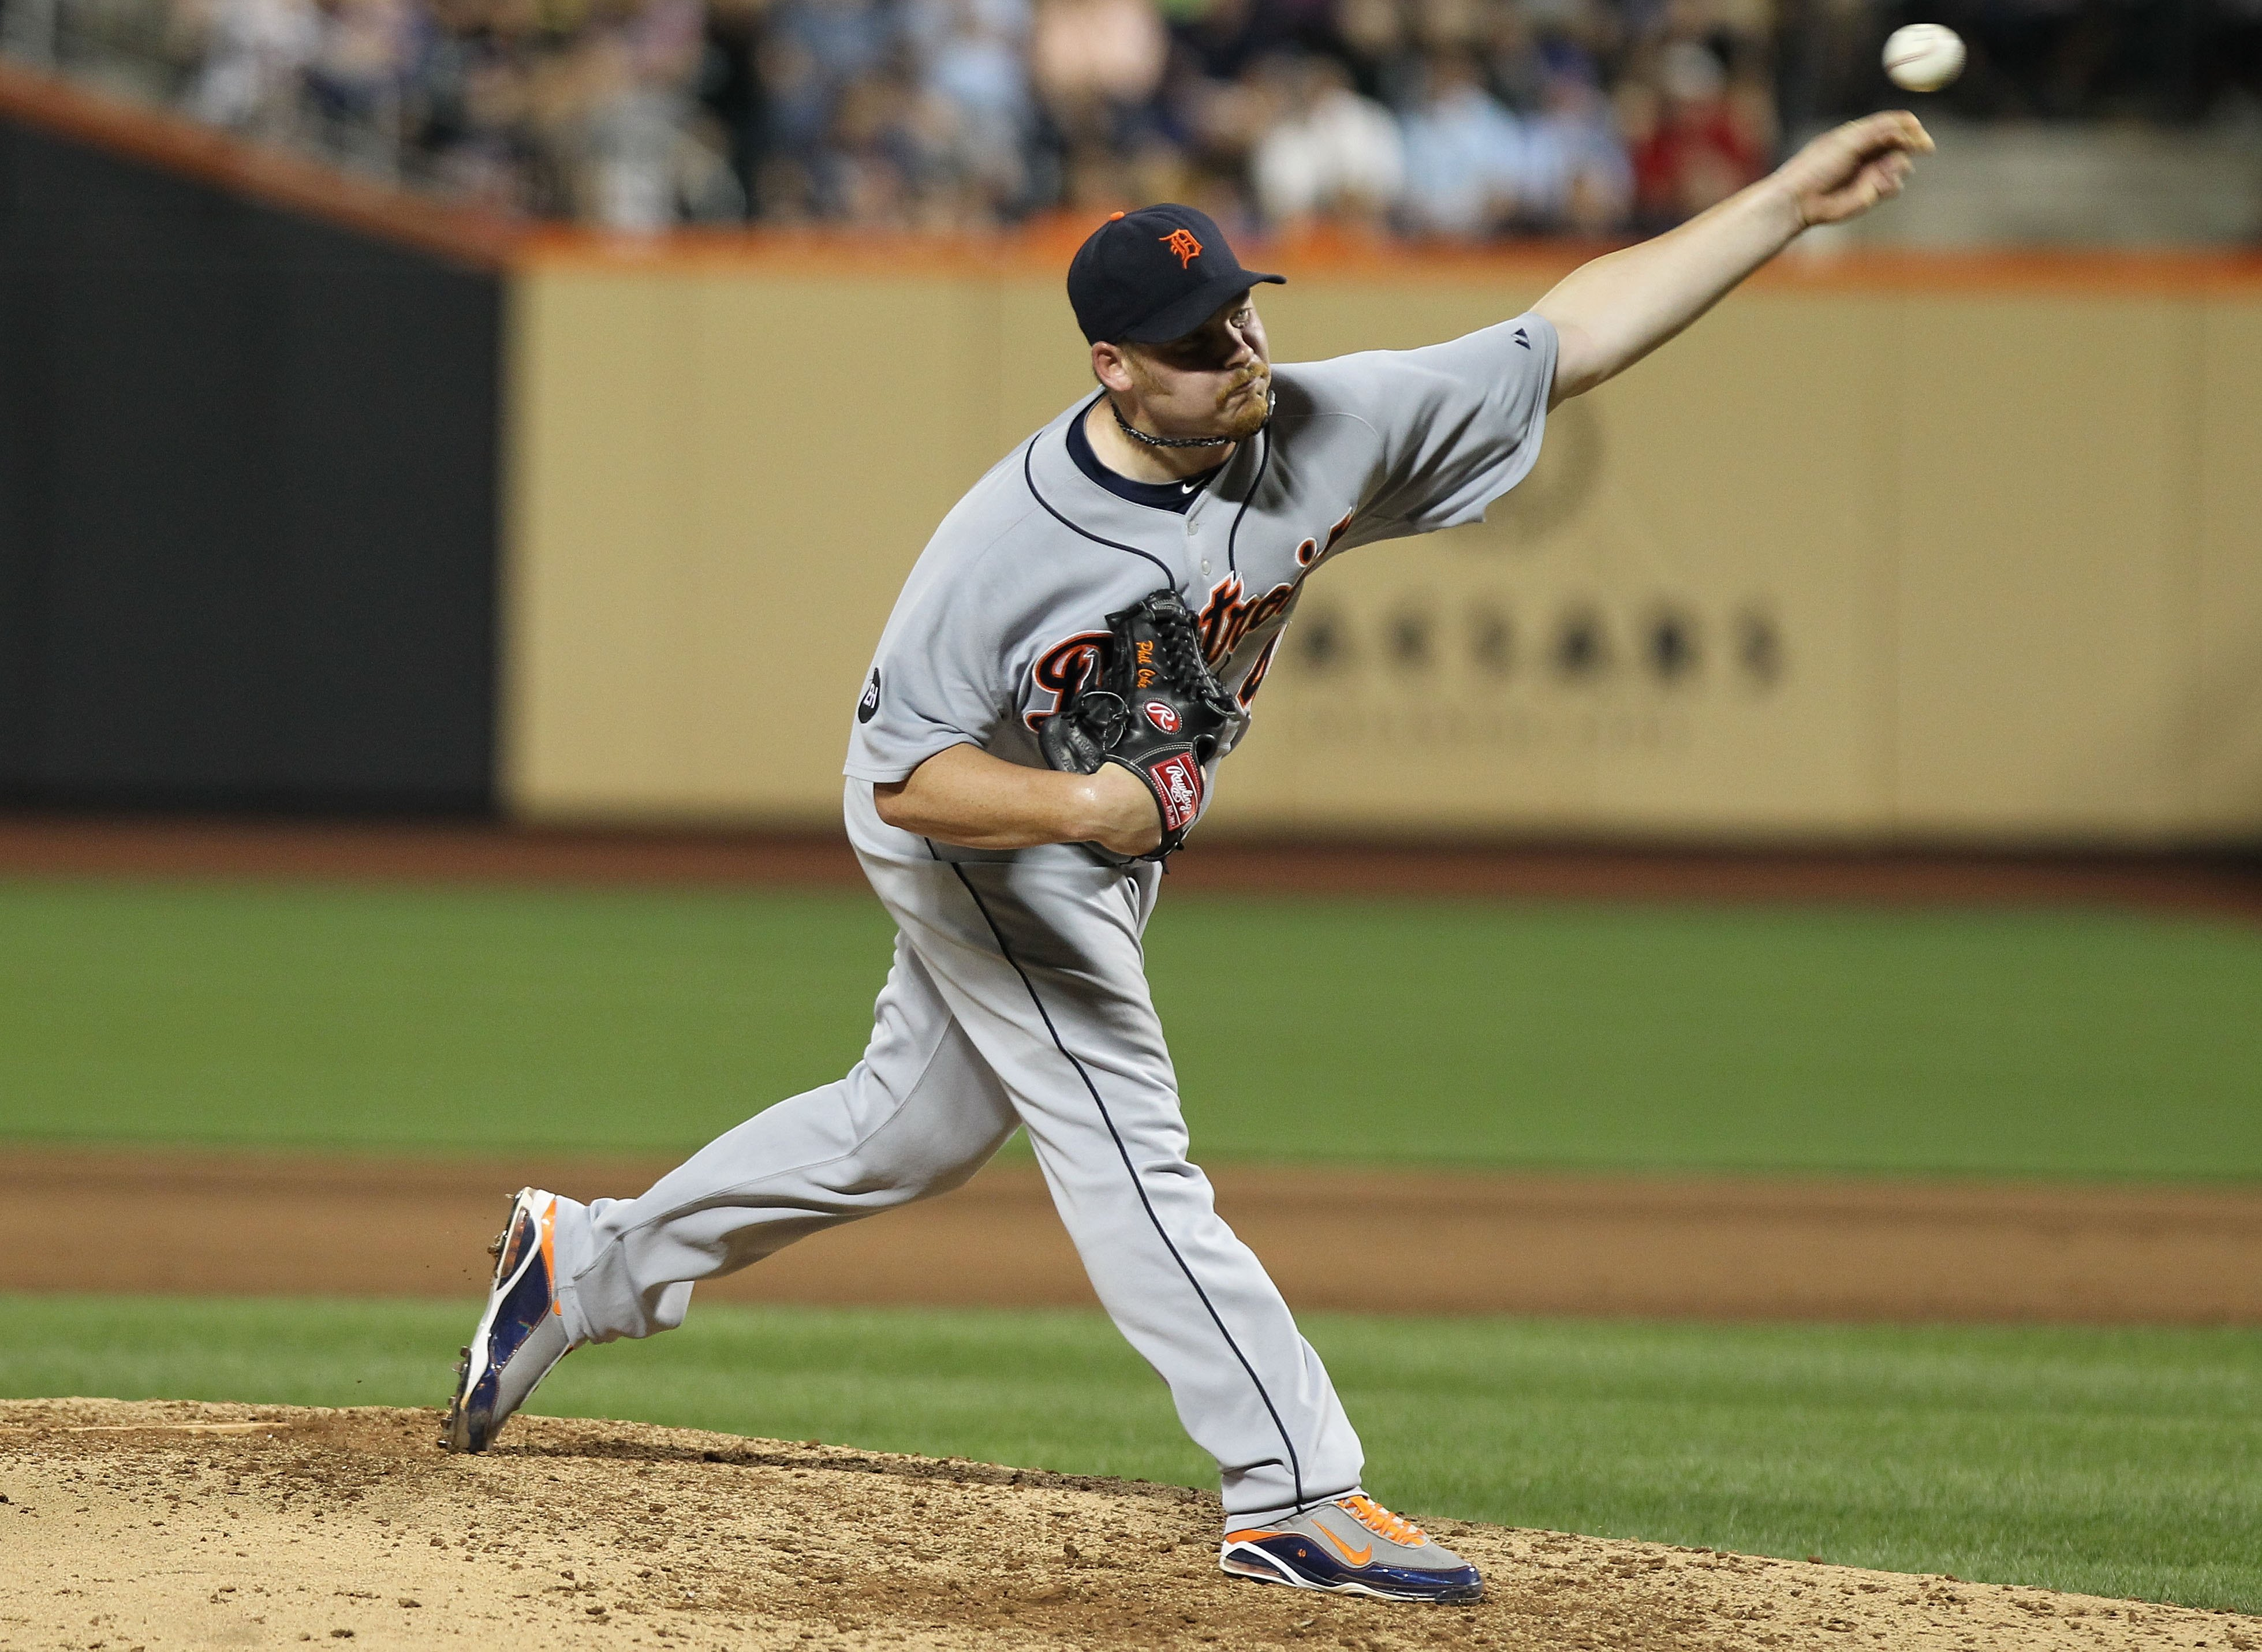 NEW YORK - JUNE 23: Phil Coke of the Detroit Tigers pitches against the New York Mets at Citi Field on June 23, 2010 in the Flushing neighborhood of the Queens borough of New York City.  (Photo by Nick Laham/Getty Images)